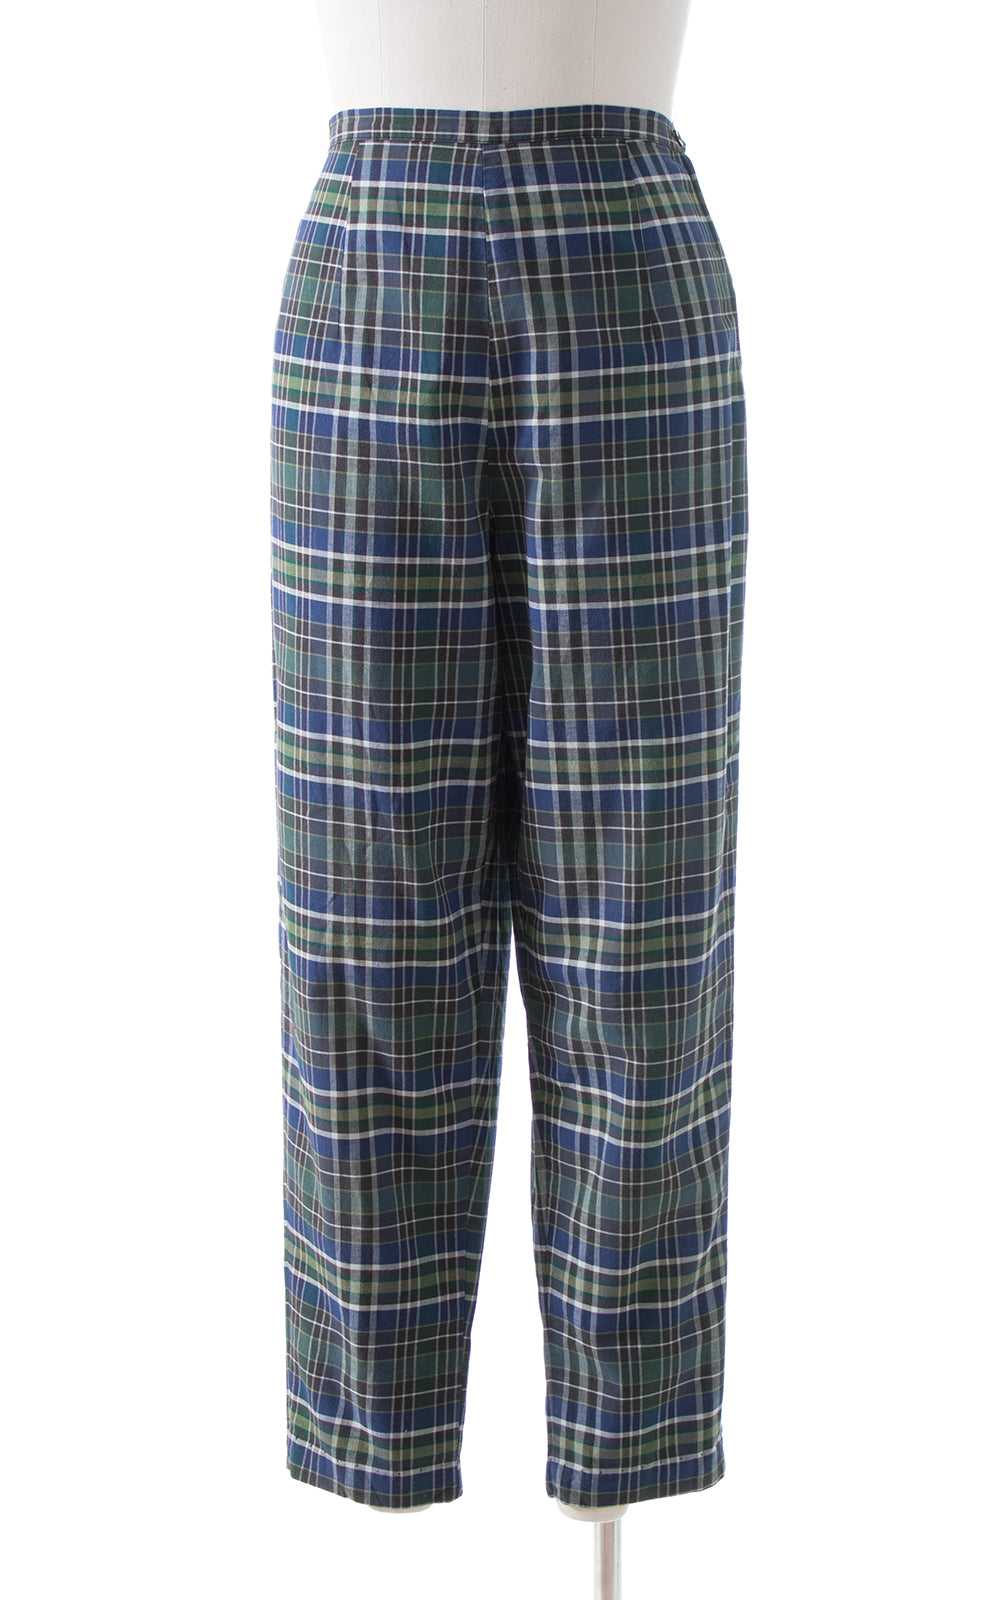 1960s Plaid Cotton Cigarette Pants